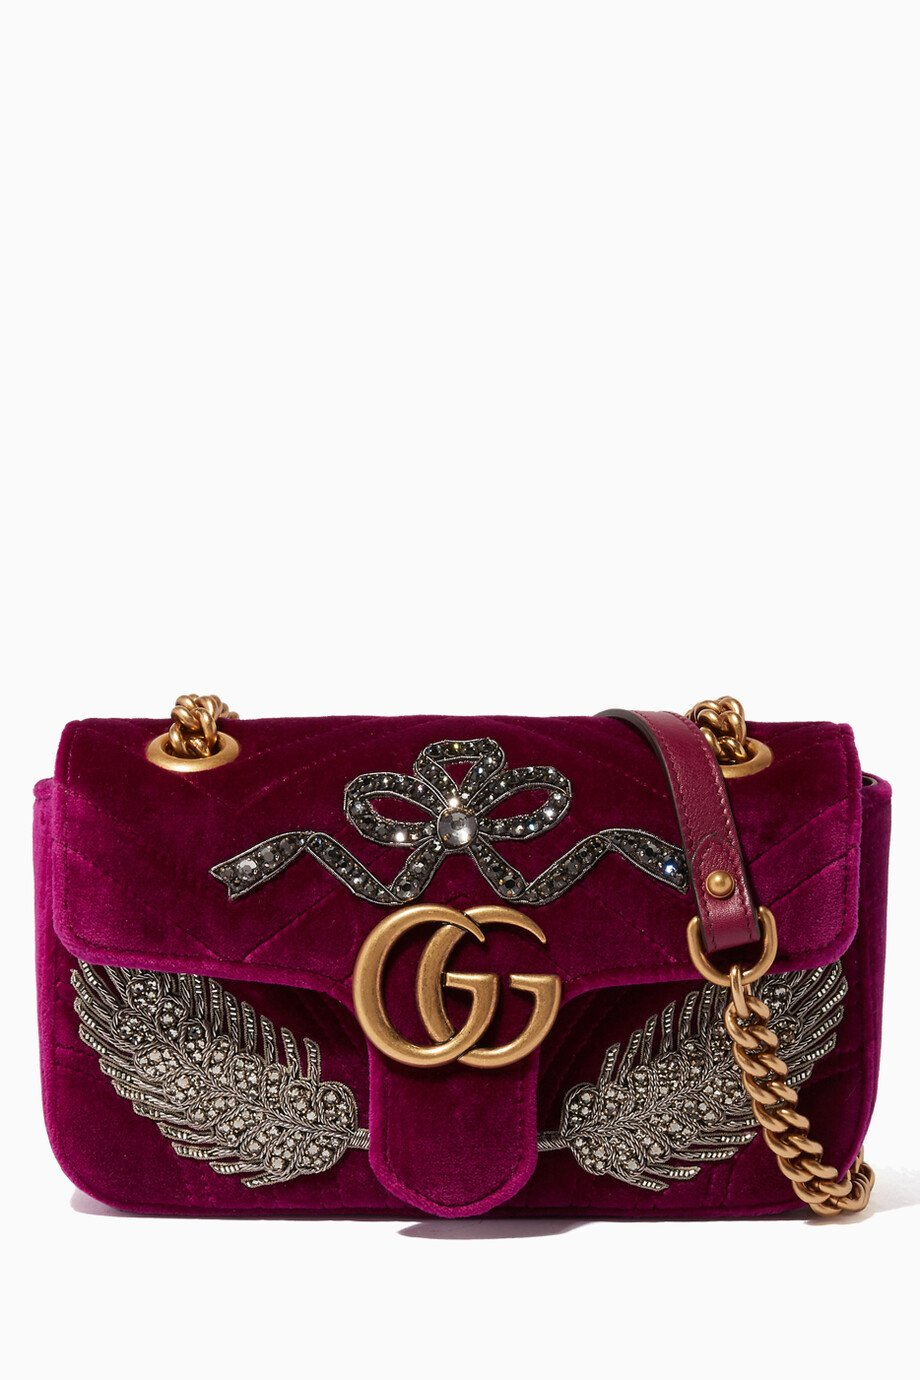 001e7db3d79ba2 Shop Gucci Pink Purple Mini GG Marmont 2.0 Velvet Shoulder Bag for ...